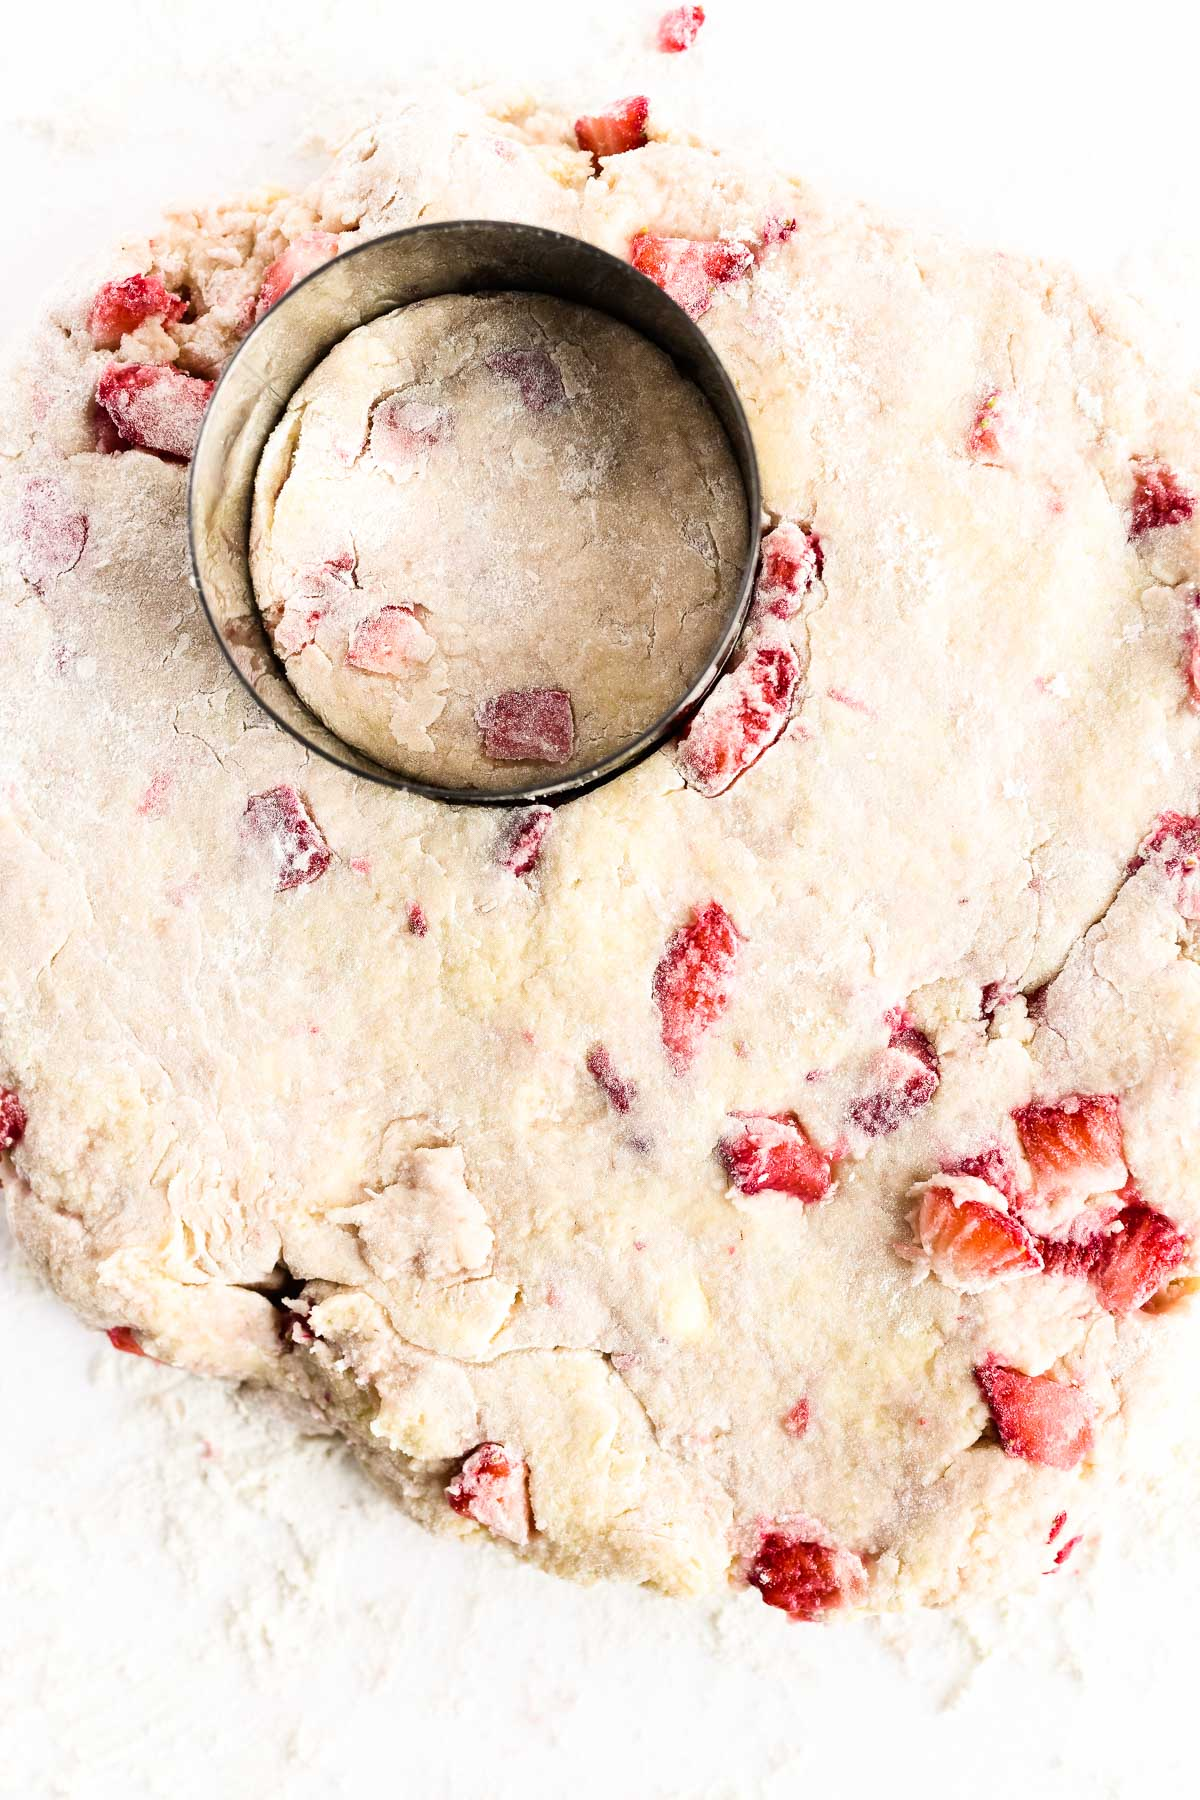 cutting out strawberry scones with a round biscuit cutter